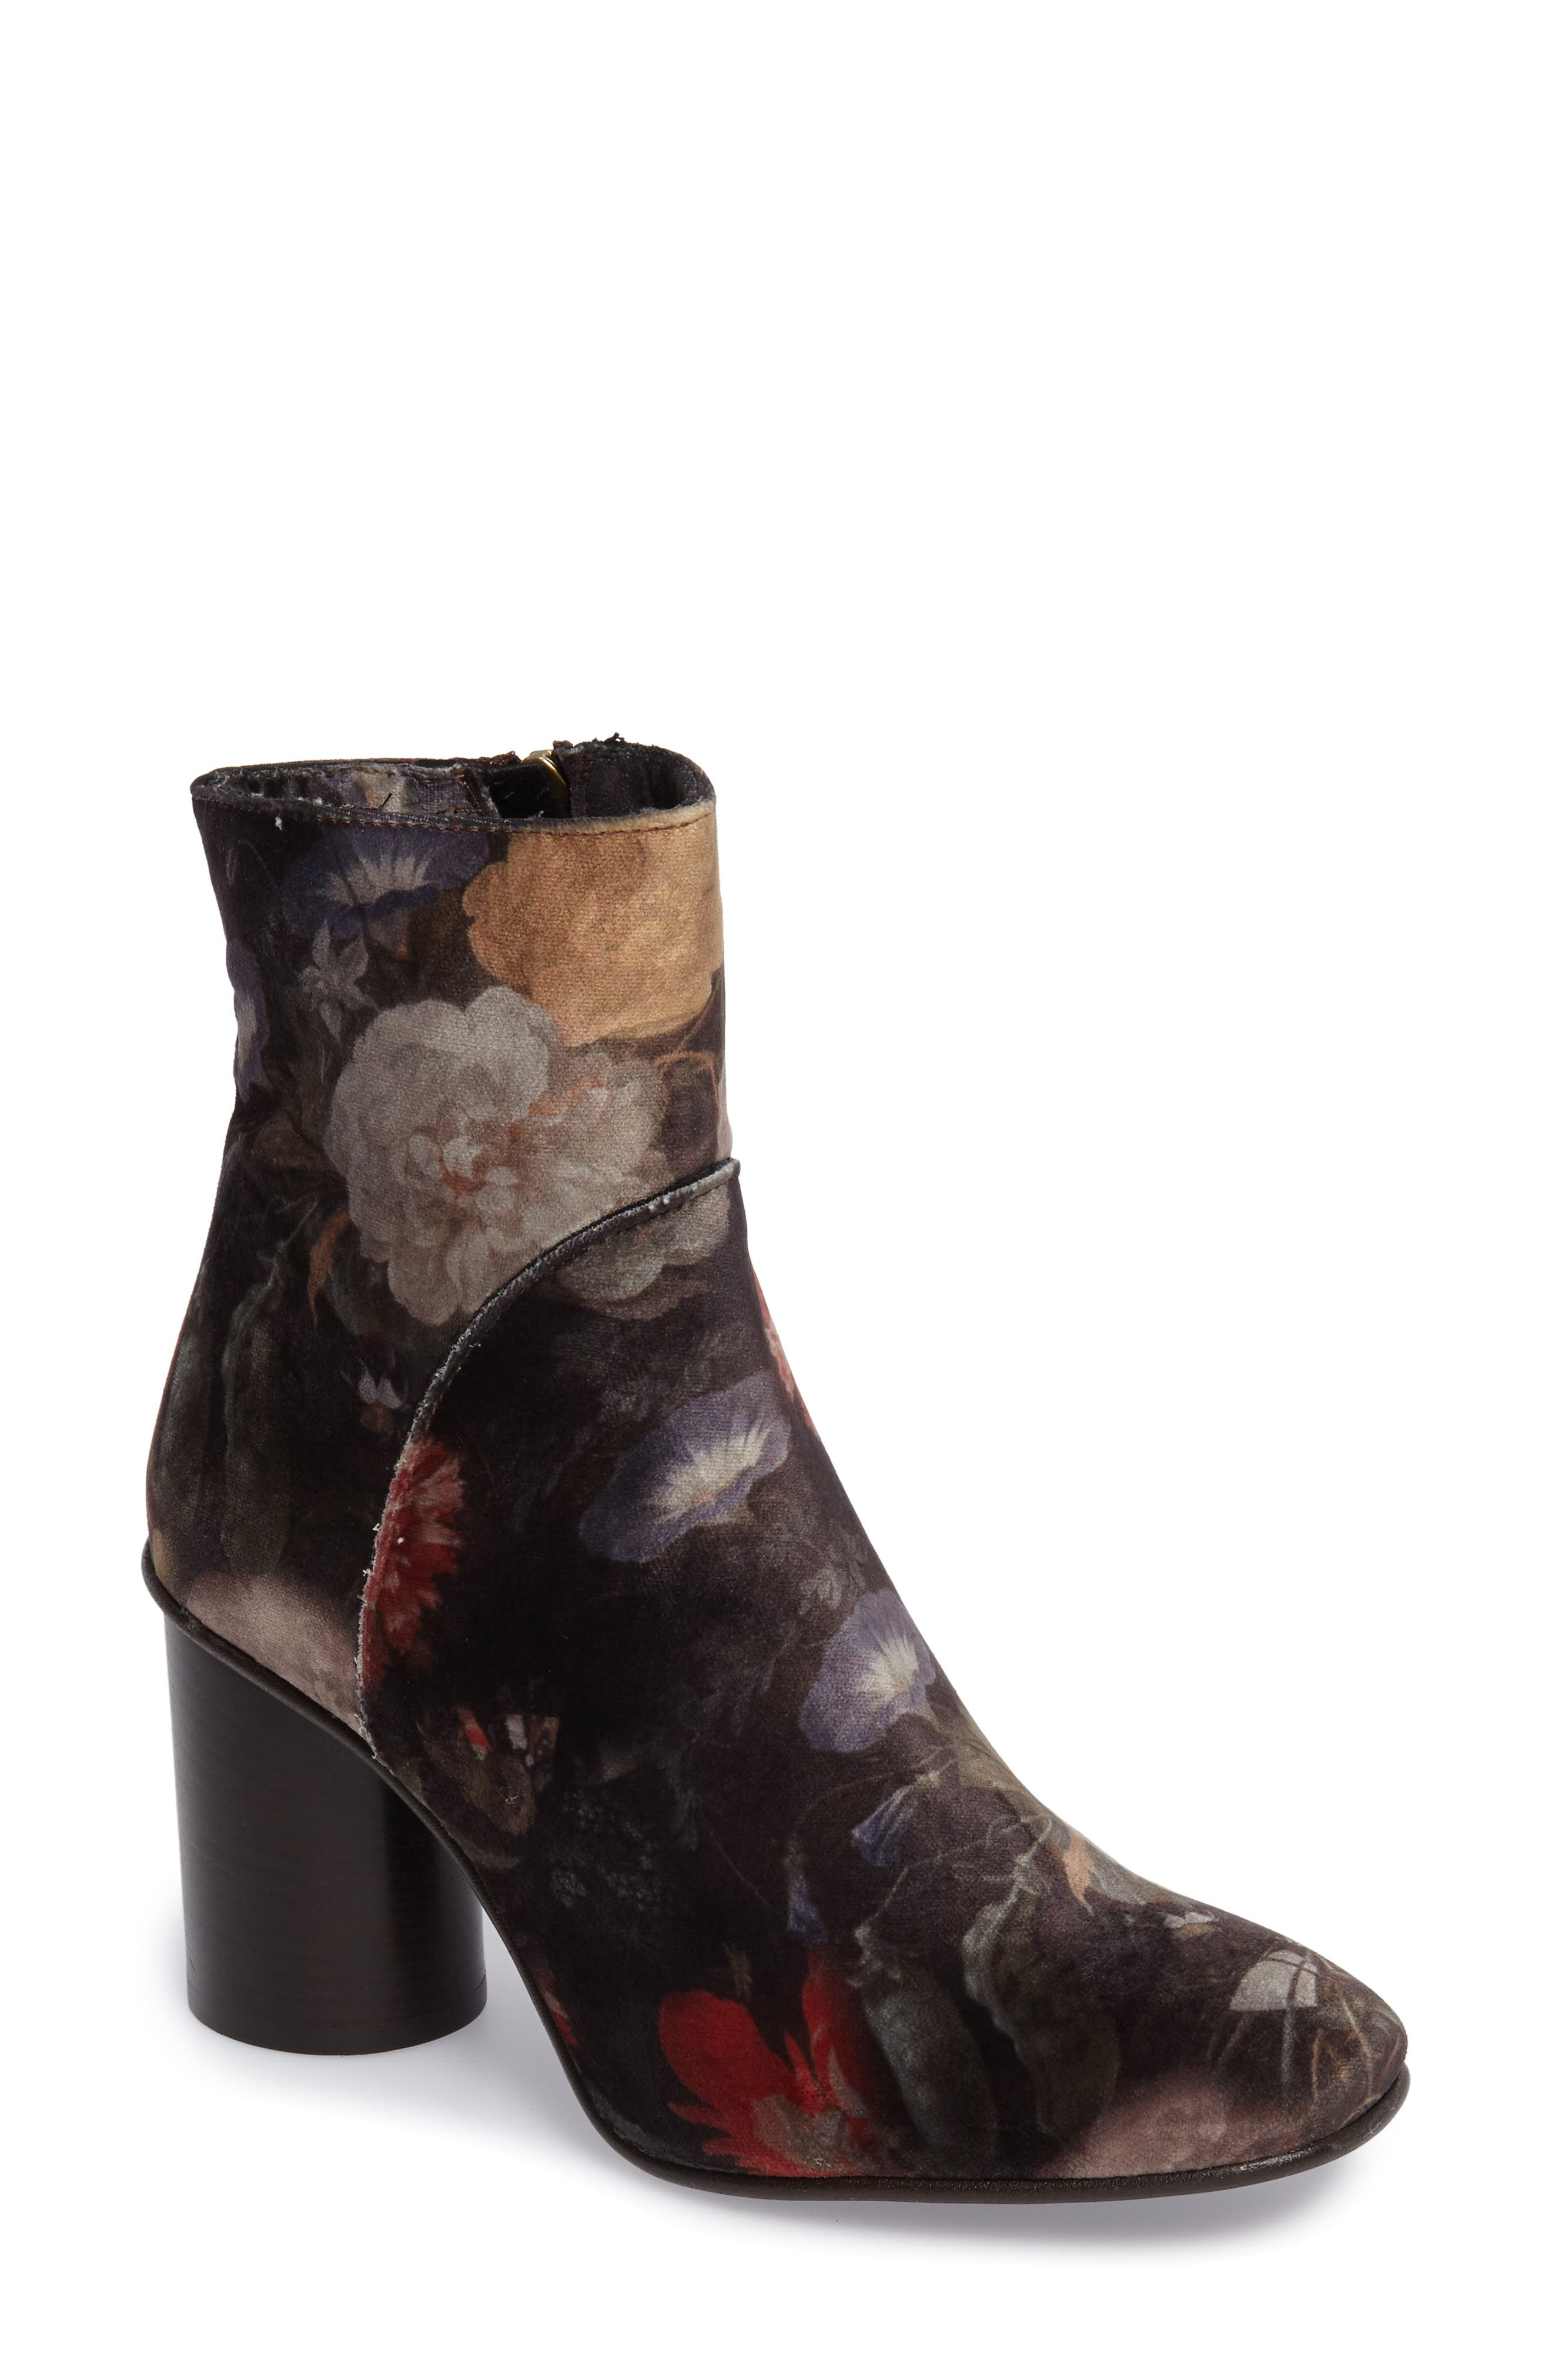 SHERIDAN MIA LILLY VELVET FLORAL BOOTIE